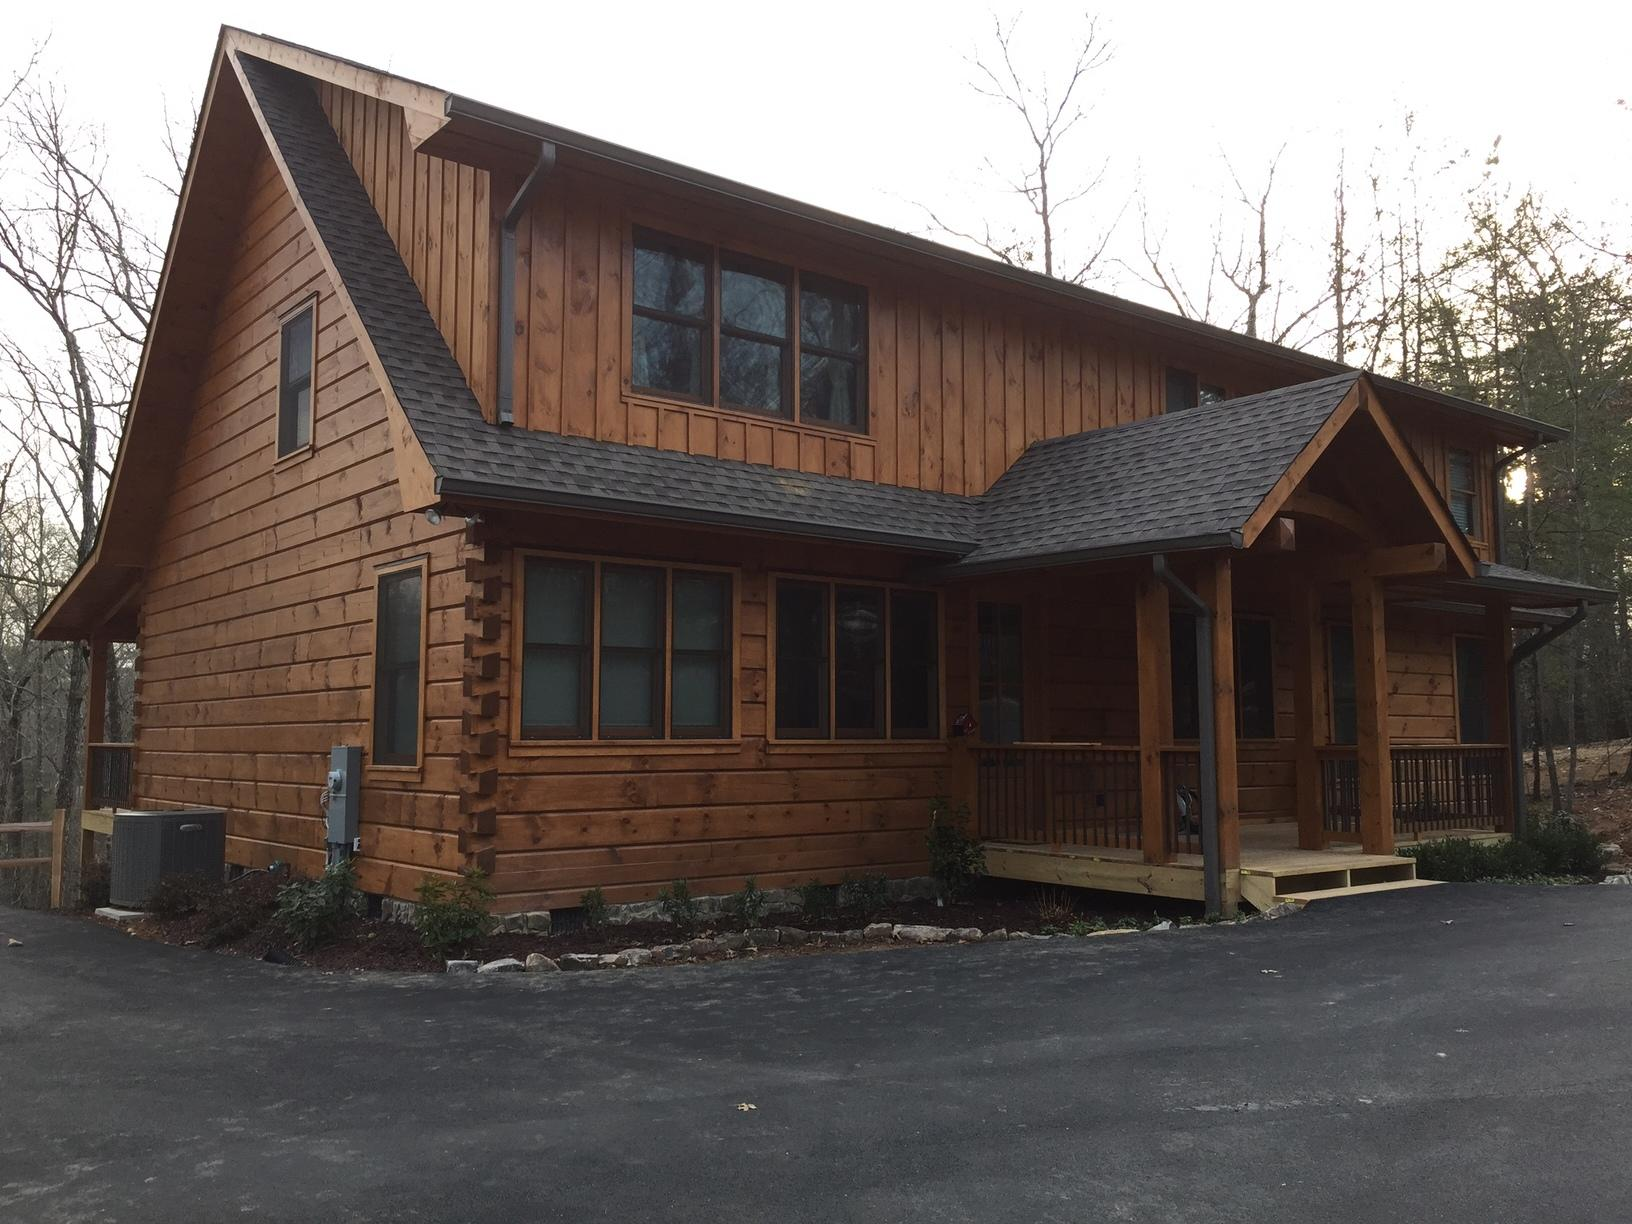 New Construction home in blue ridge, ga - After Photo